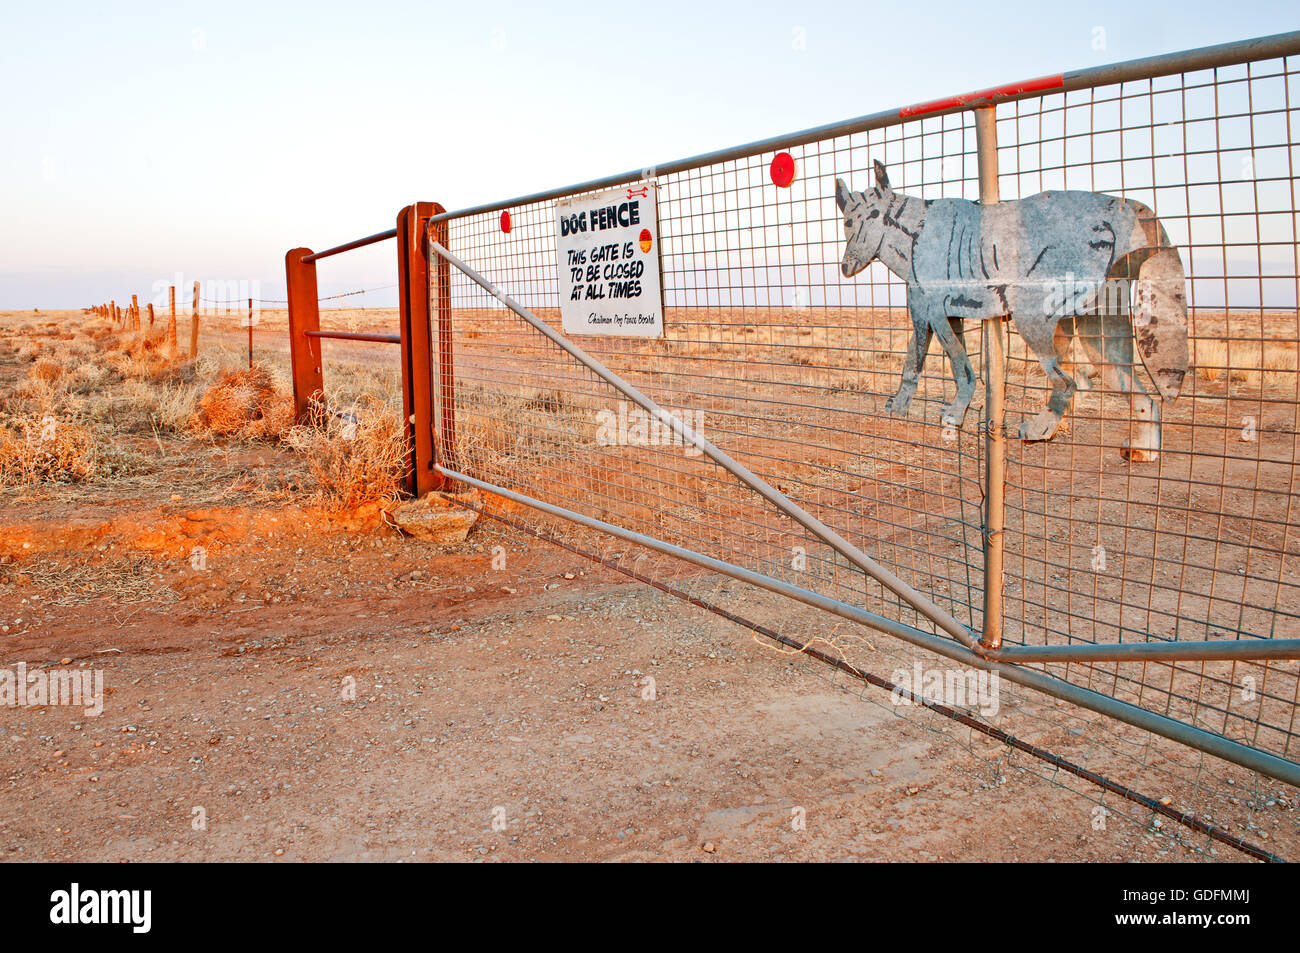 Gate of the Dingo Fence in the desert of South Australia. - Stock Image